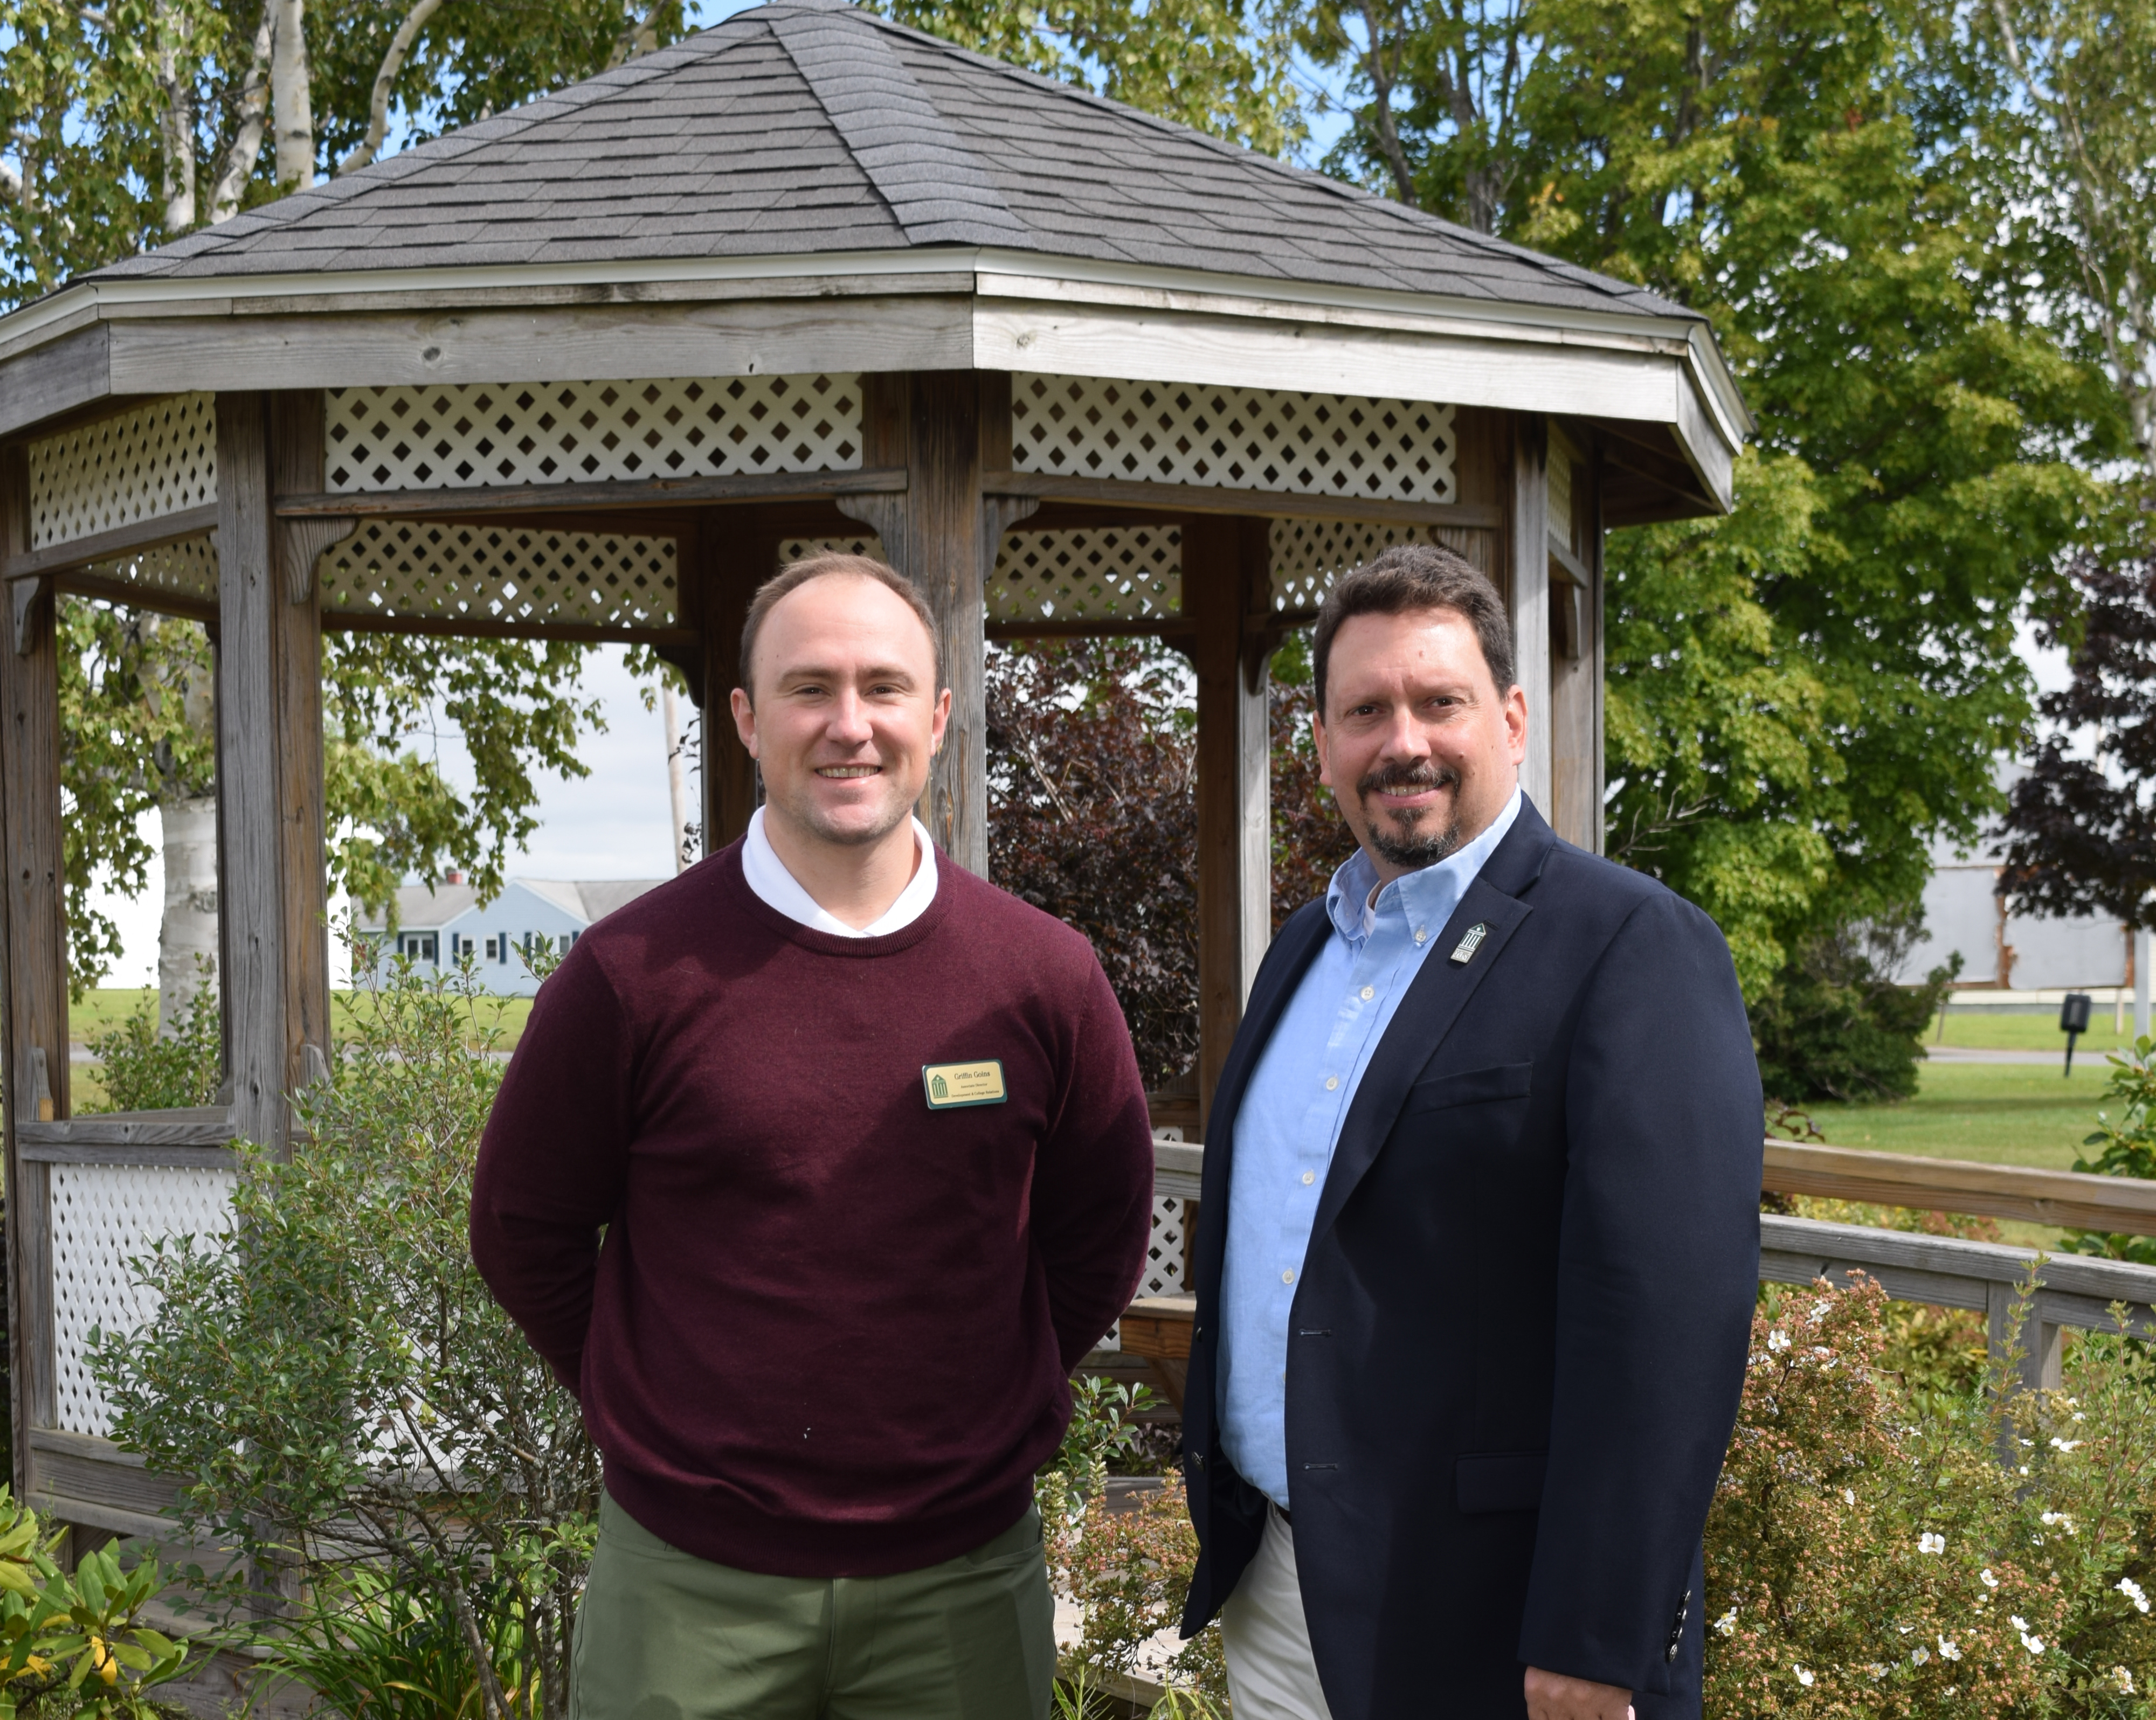 Aroostook County Northern Maine Community College President Timothy Crowley Is Pleased To Announce Two New Members The NMCC Staff Edward Wright And